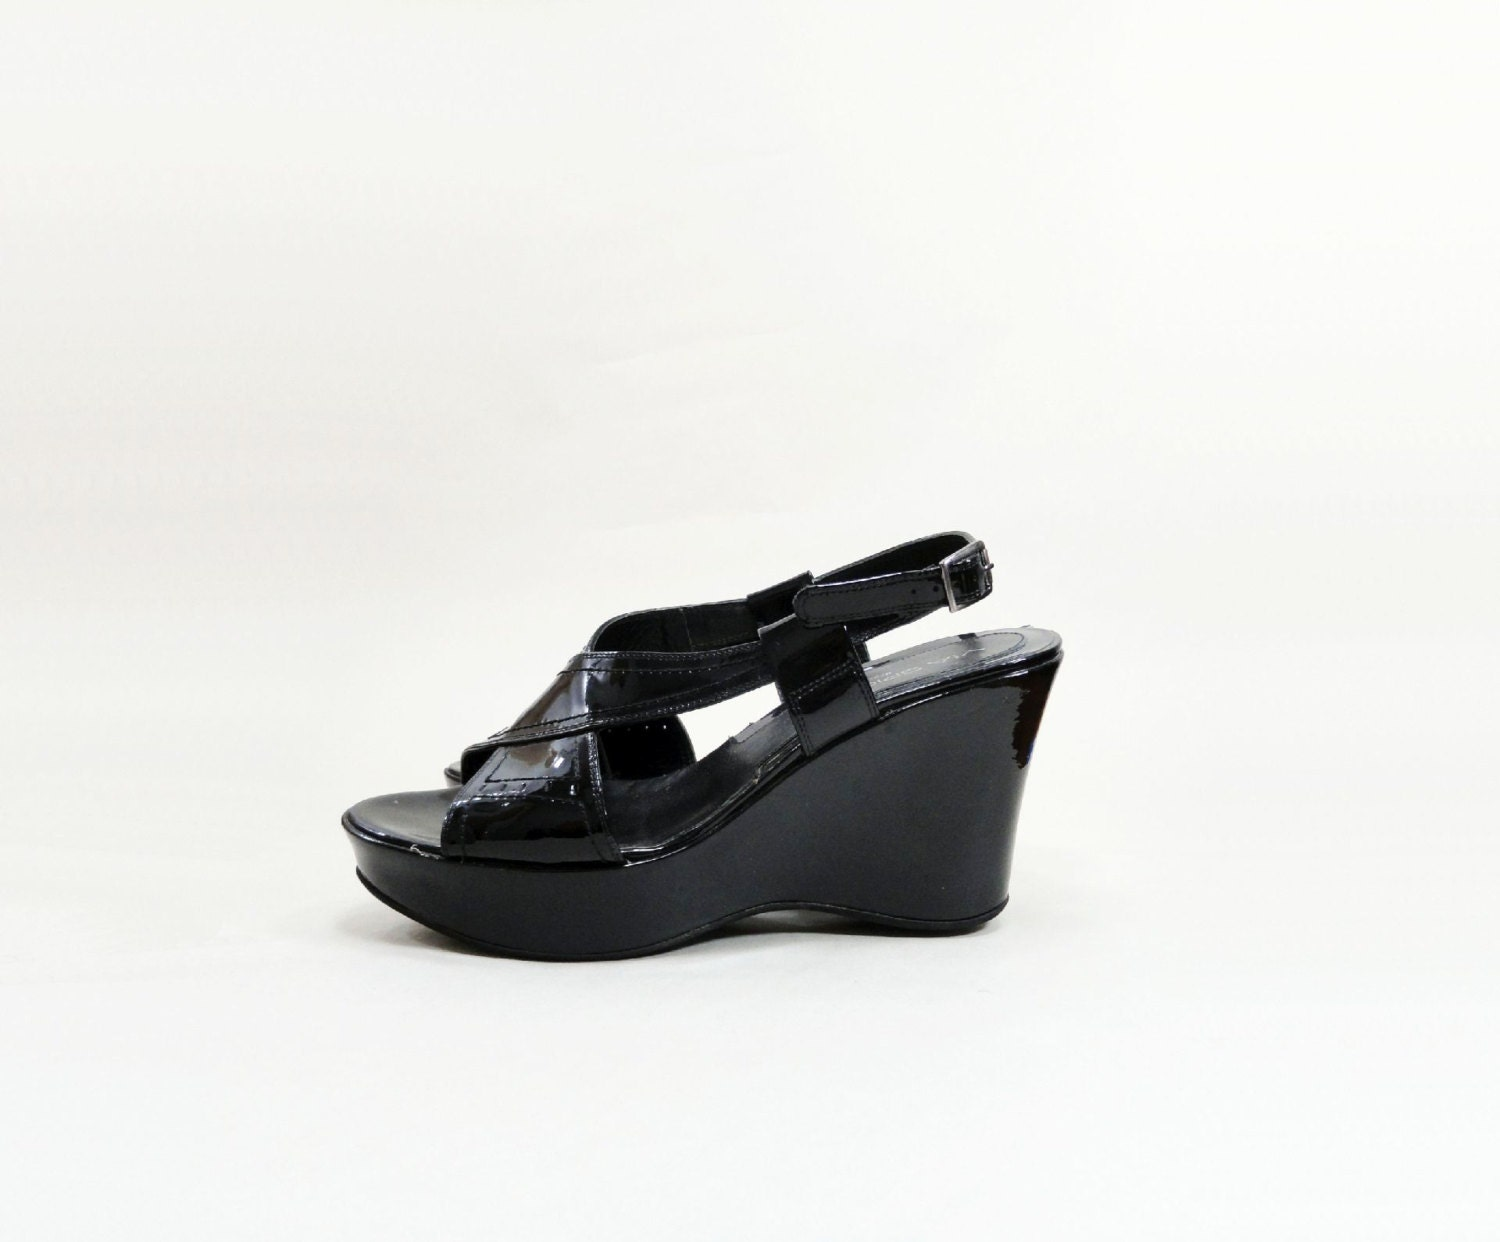 Find great deals on eBay for size 11 wedges. Shop with confidence. Skip to main content. eBay: Shop by category. Shop by category. Enter your search keyword Seychelles Brand, Coral lace up platform wedges, Size Pre-Owned.